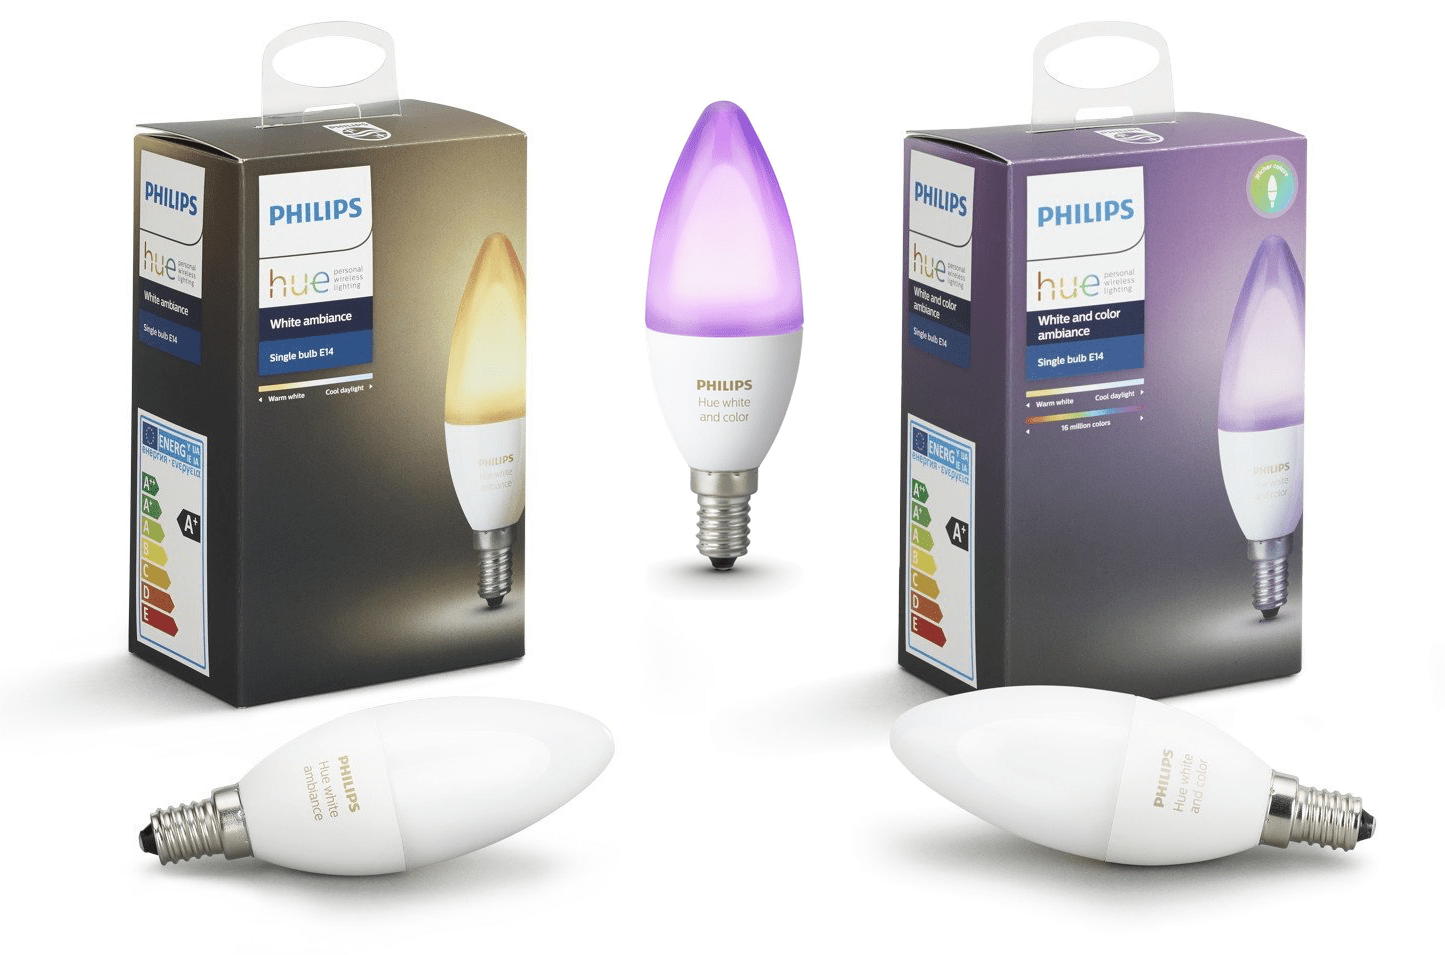 Hue Fitting Philips Hue Lampen Met E14 Fitting In April One More Thing